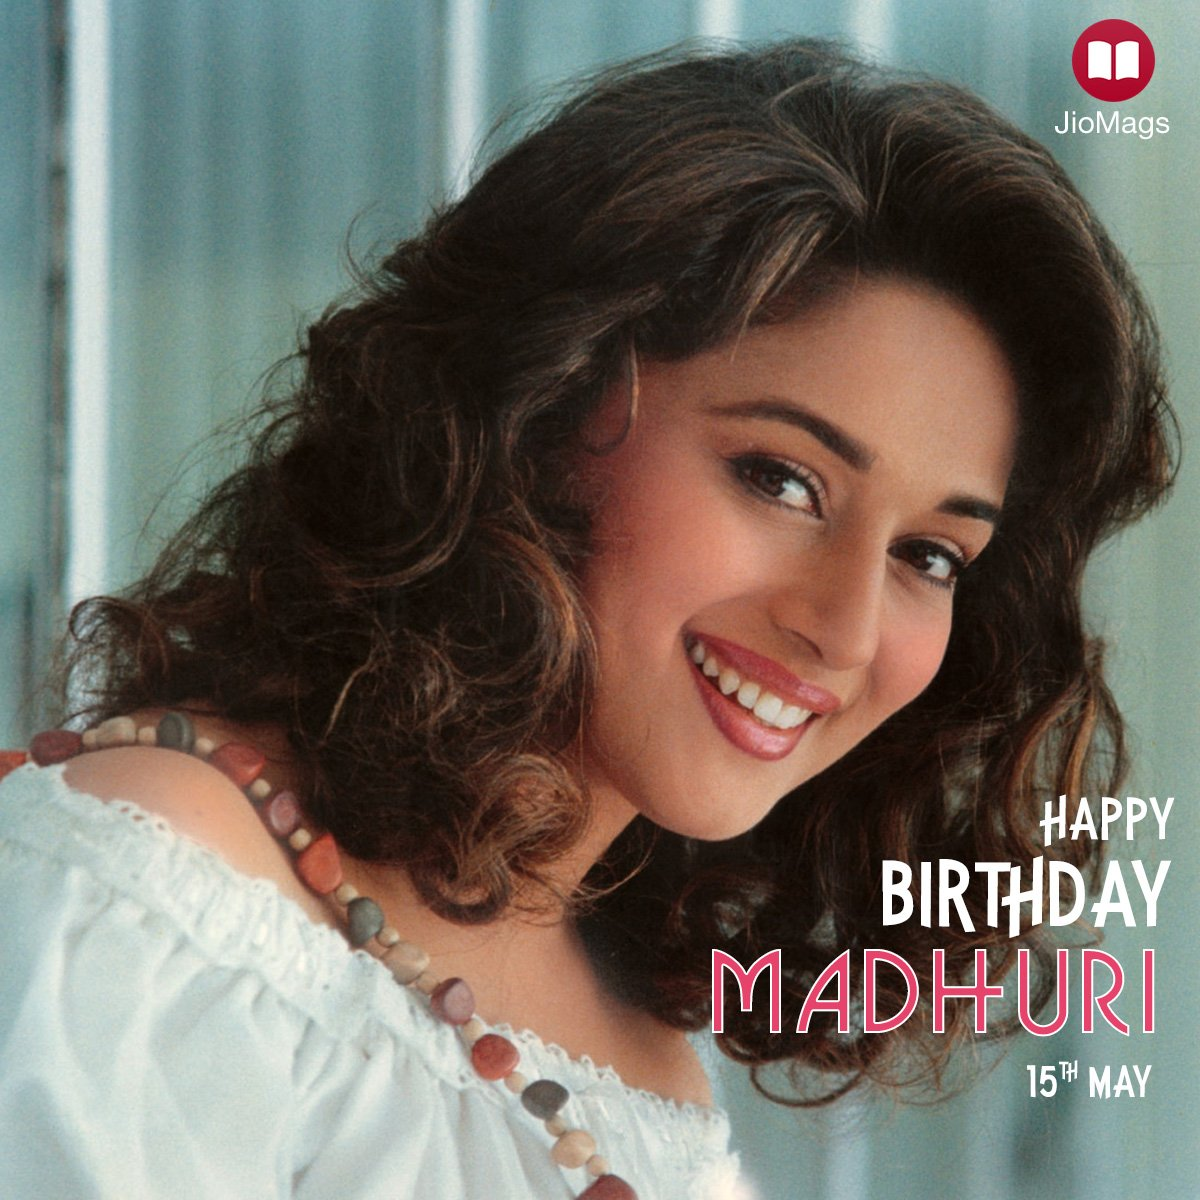 Wishing the gorgeous and talented Madhuri Dixit a very happy birthday!